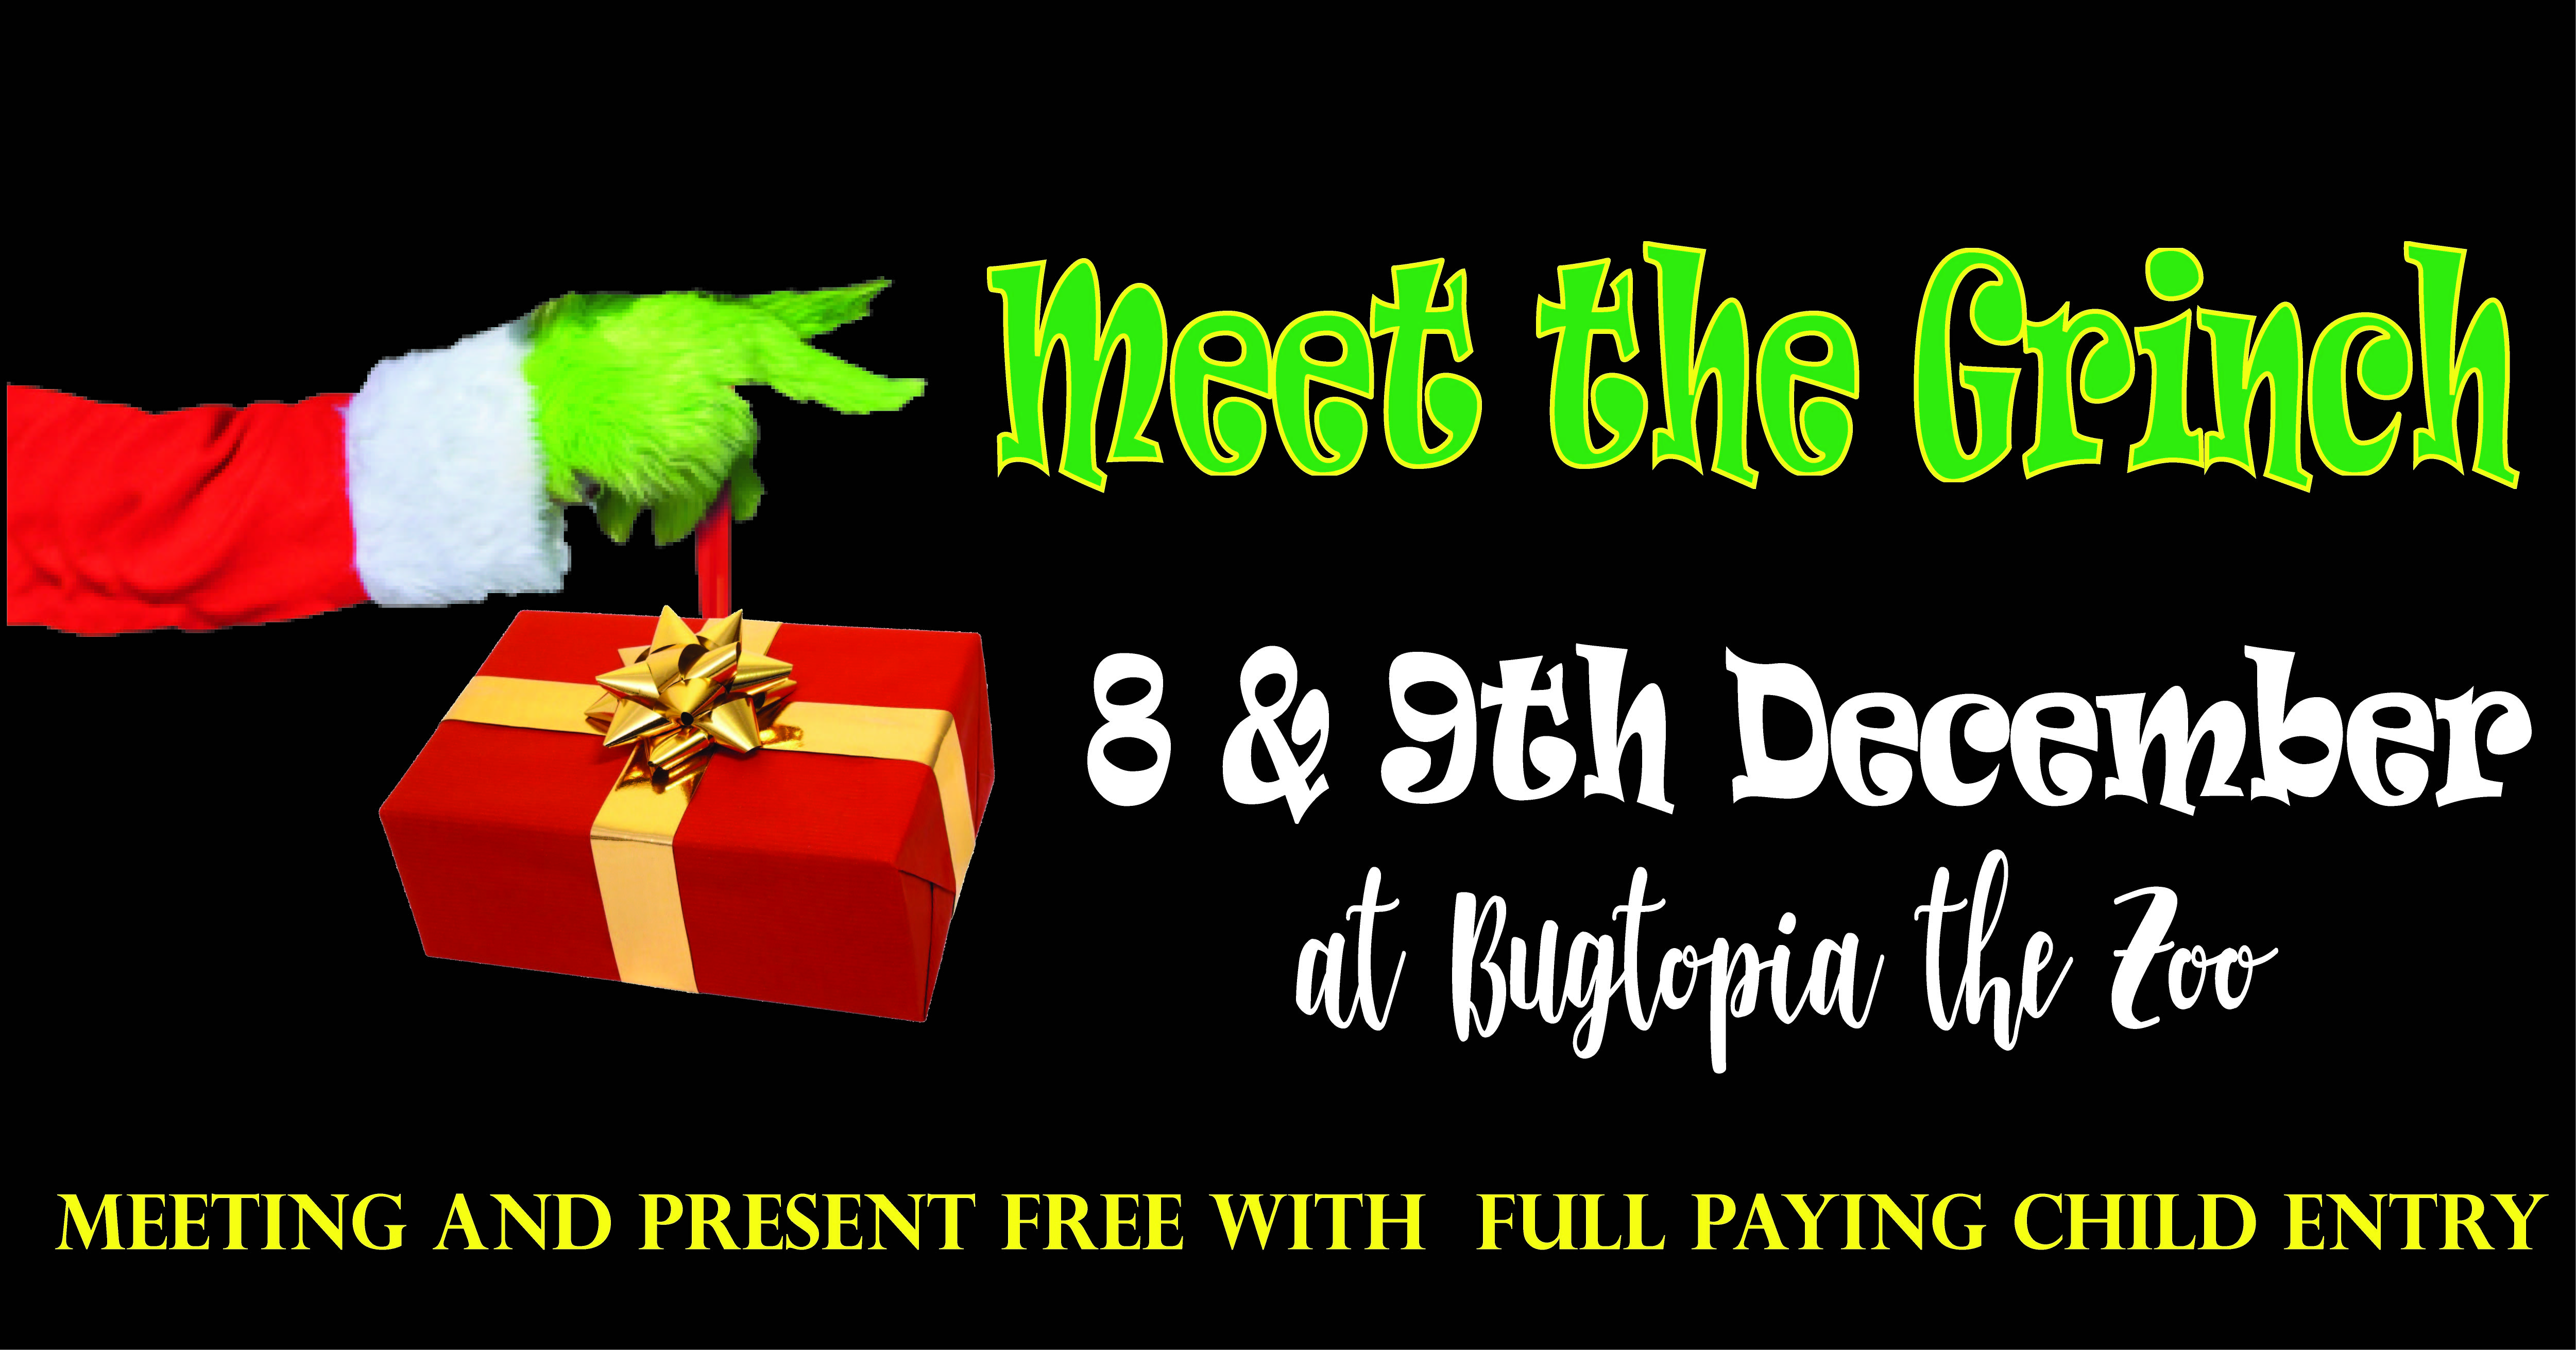 Grinch day zoo entry 9th december